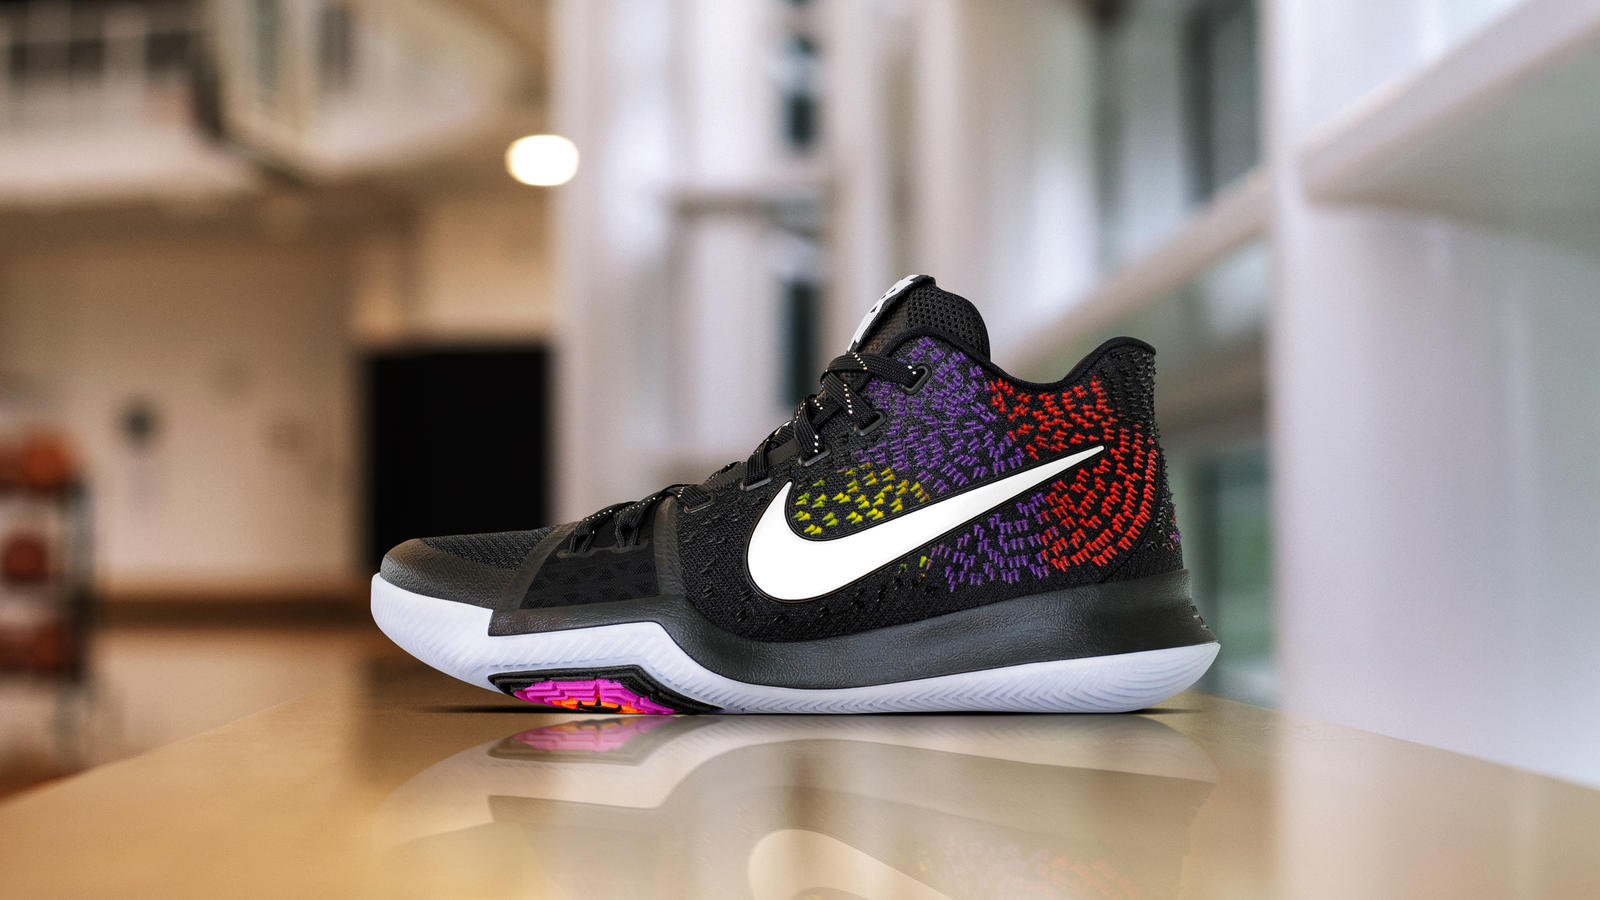 Kyrie Irving Receives a Colorful Nike Kyrie 3 PE